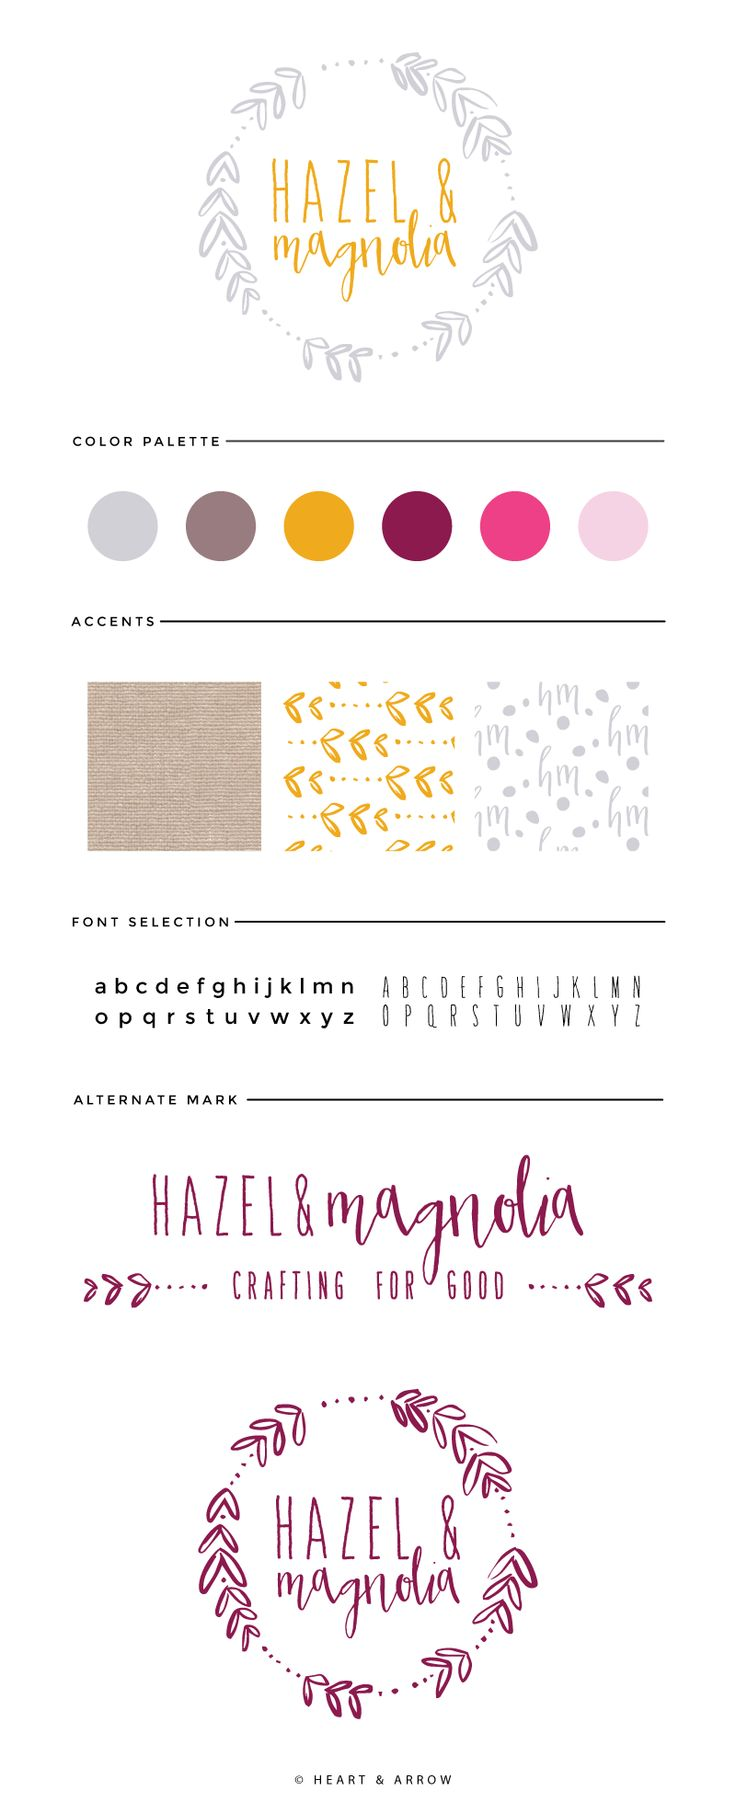 Hazel and Magnolia Brand Board // love love this one- especially the fonts + hand lettering look. Also really like the full logo/header PLUS the round more compact version. The colors are not what I'm looking for but love the logo